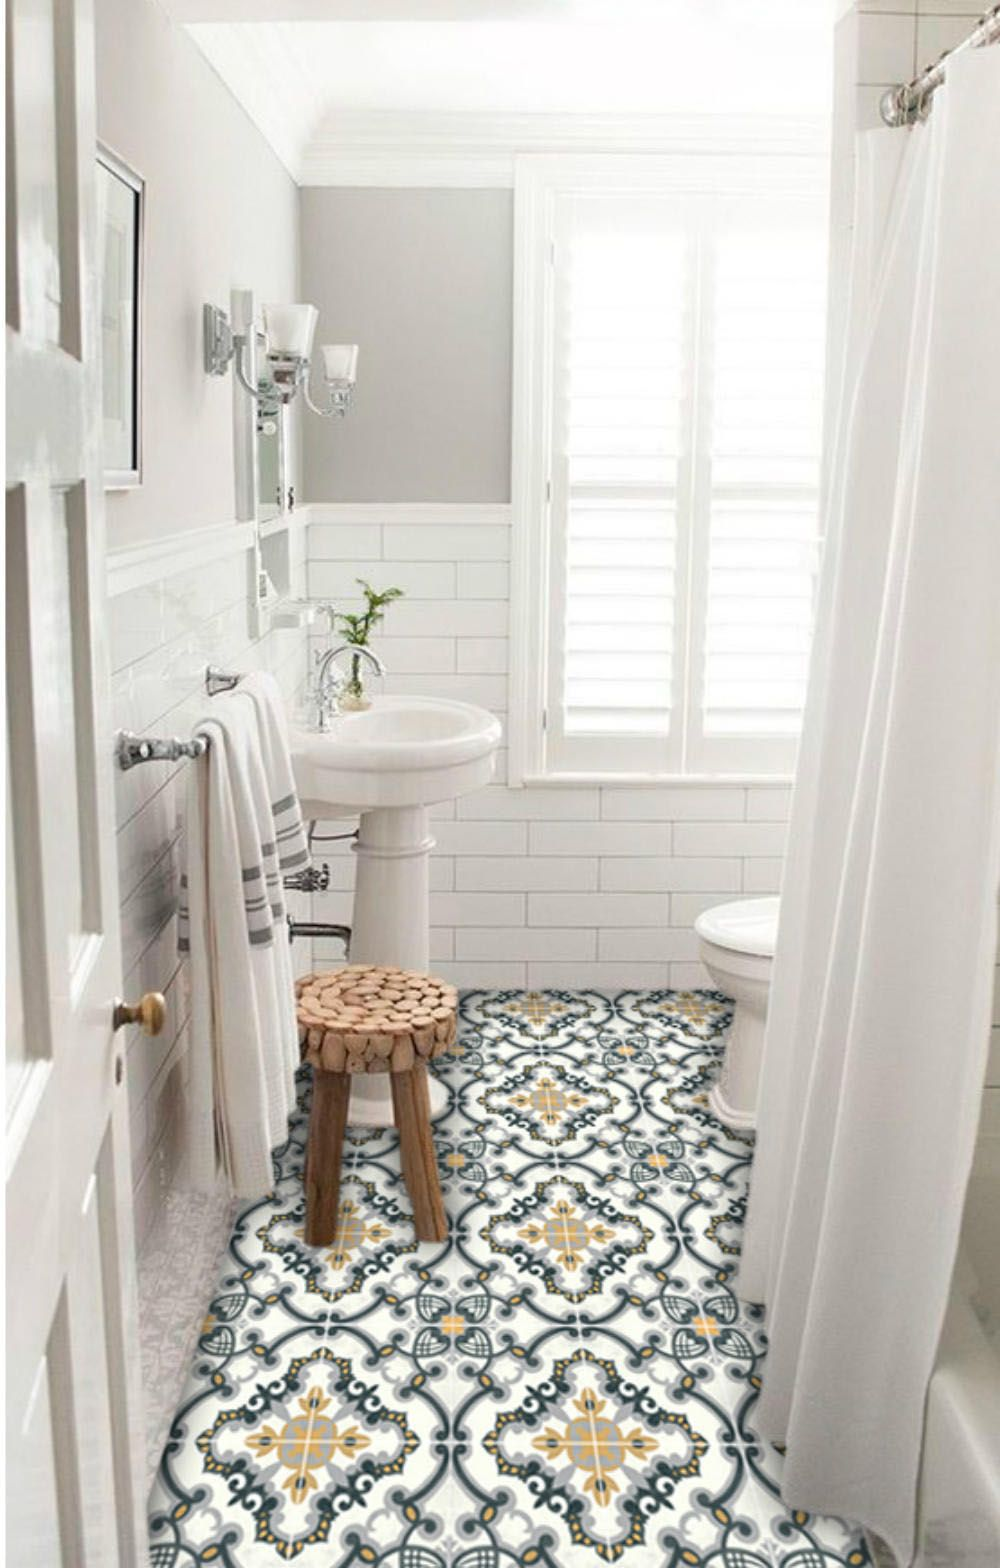 Great Tile Ideas For Small Bathrooms With Images Bathroom